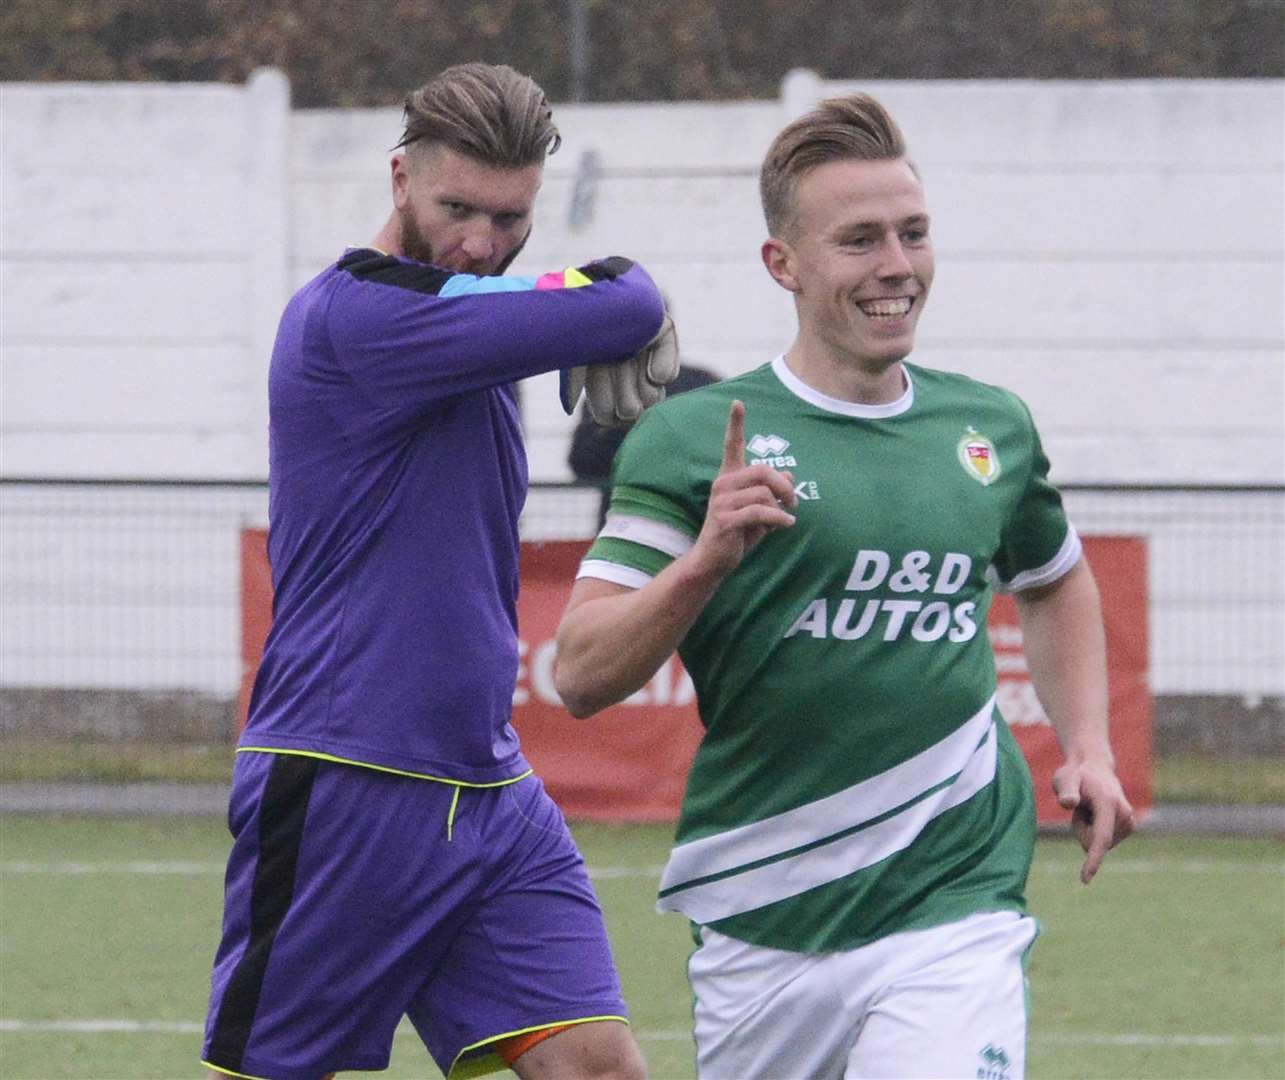 Sam Corne celebrates one of his two goals for Ashford Picture: Paul Amos